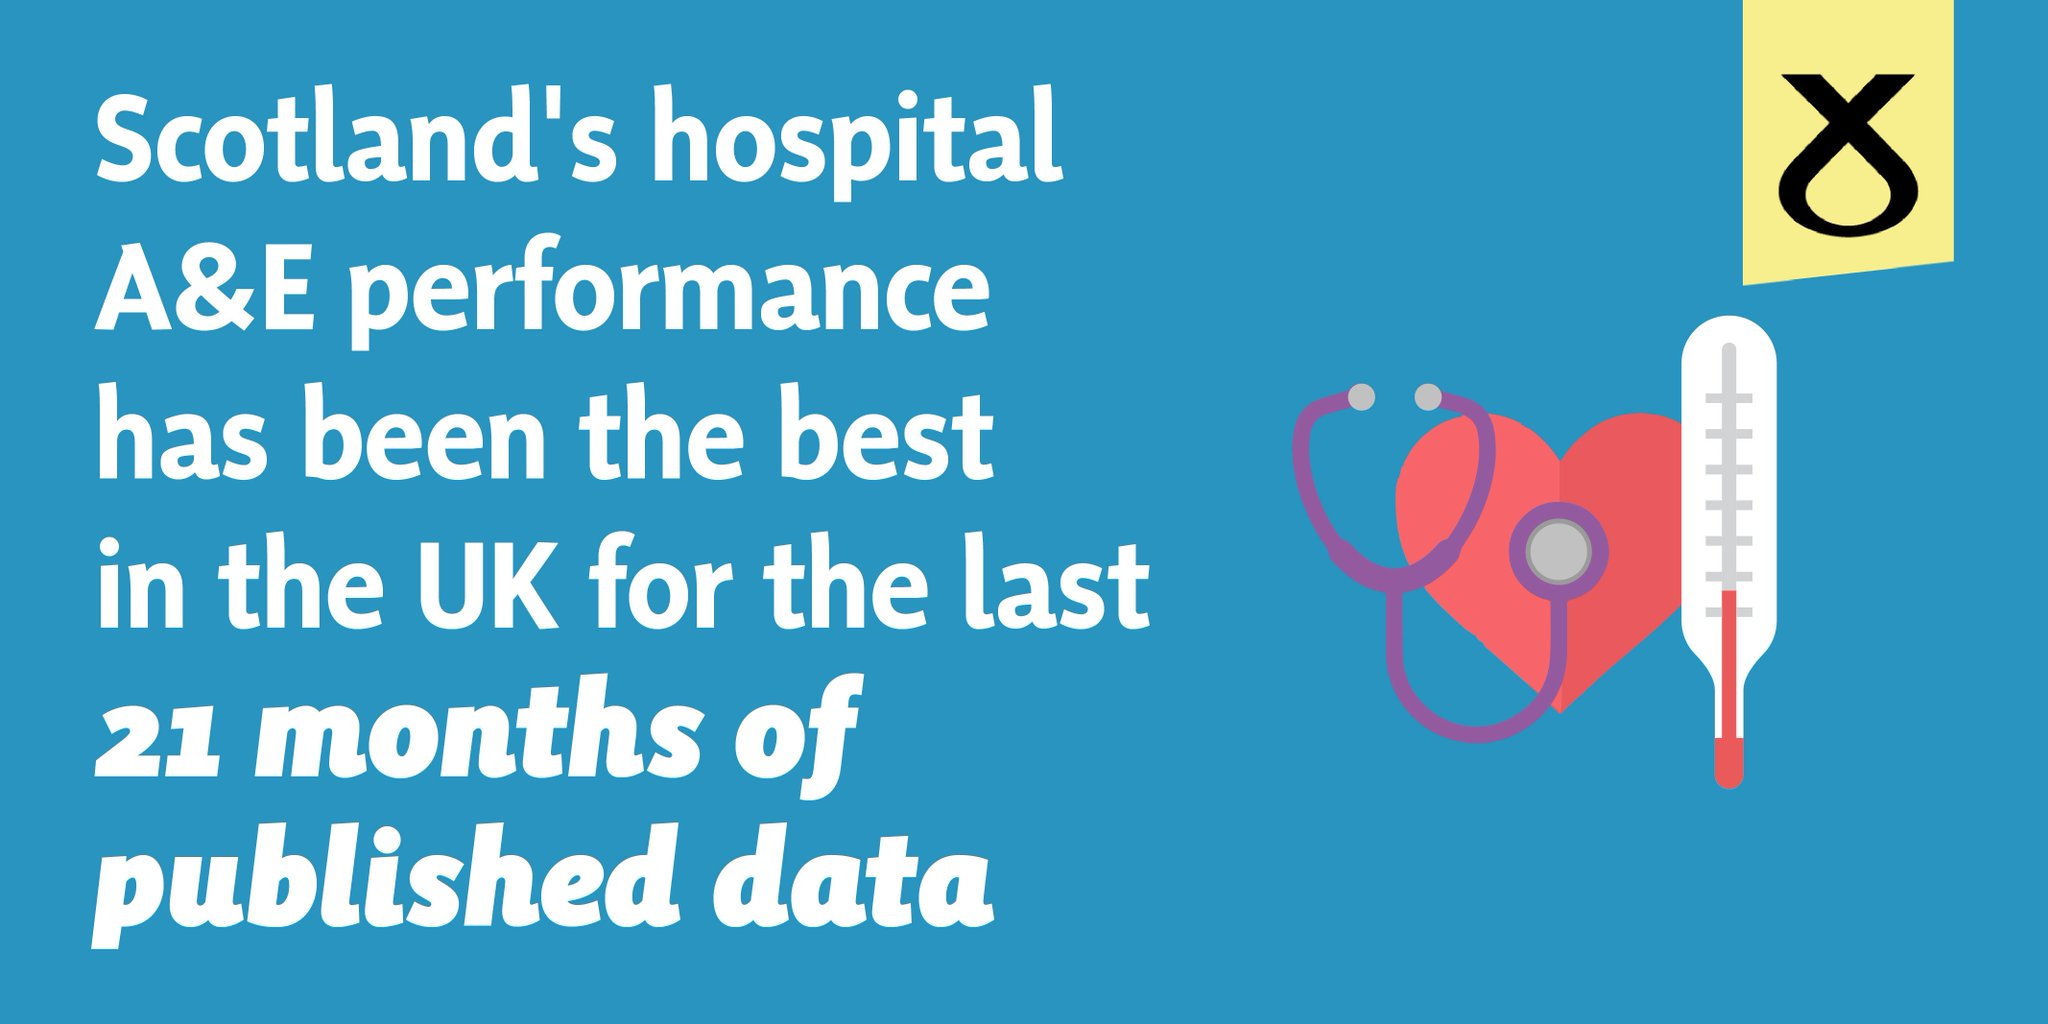 ❤️ Scotland's core A&Es have been the best performing in the UK for 21 months. Get the facts about our NHS here: https://t.co/GYMBso4kuO https://t.co/4JbCSfDixg